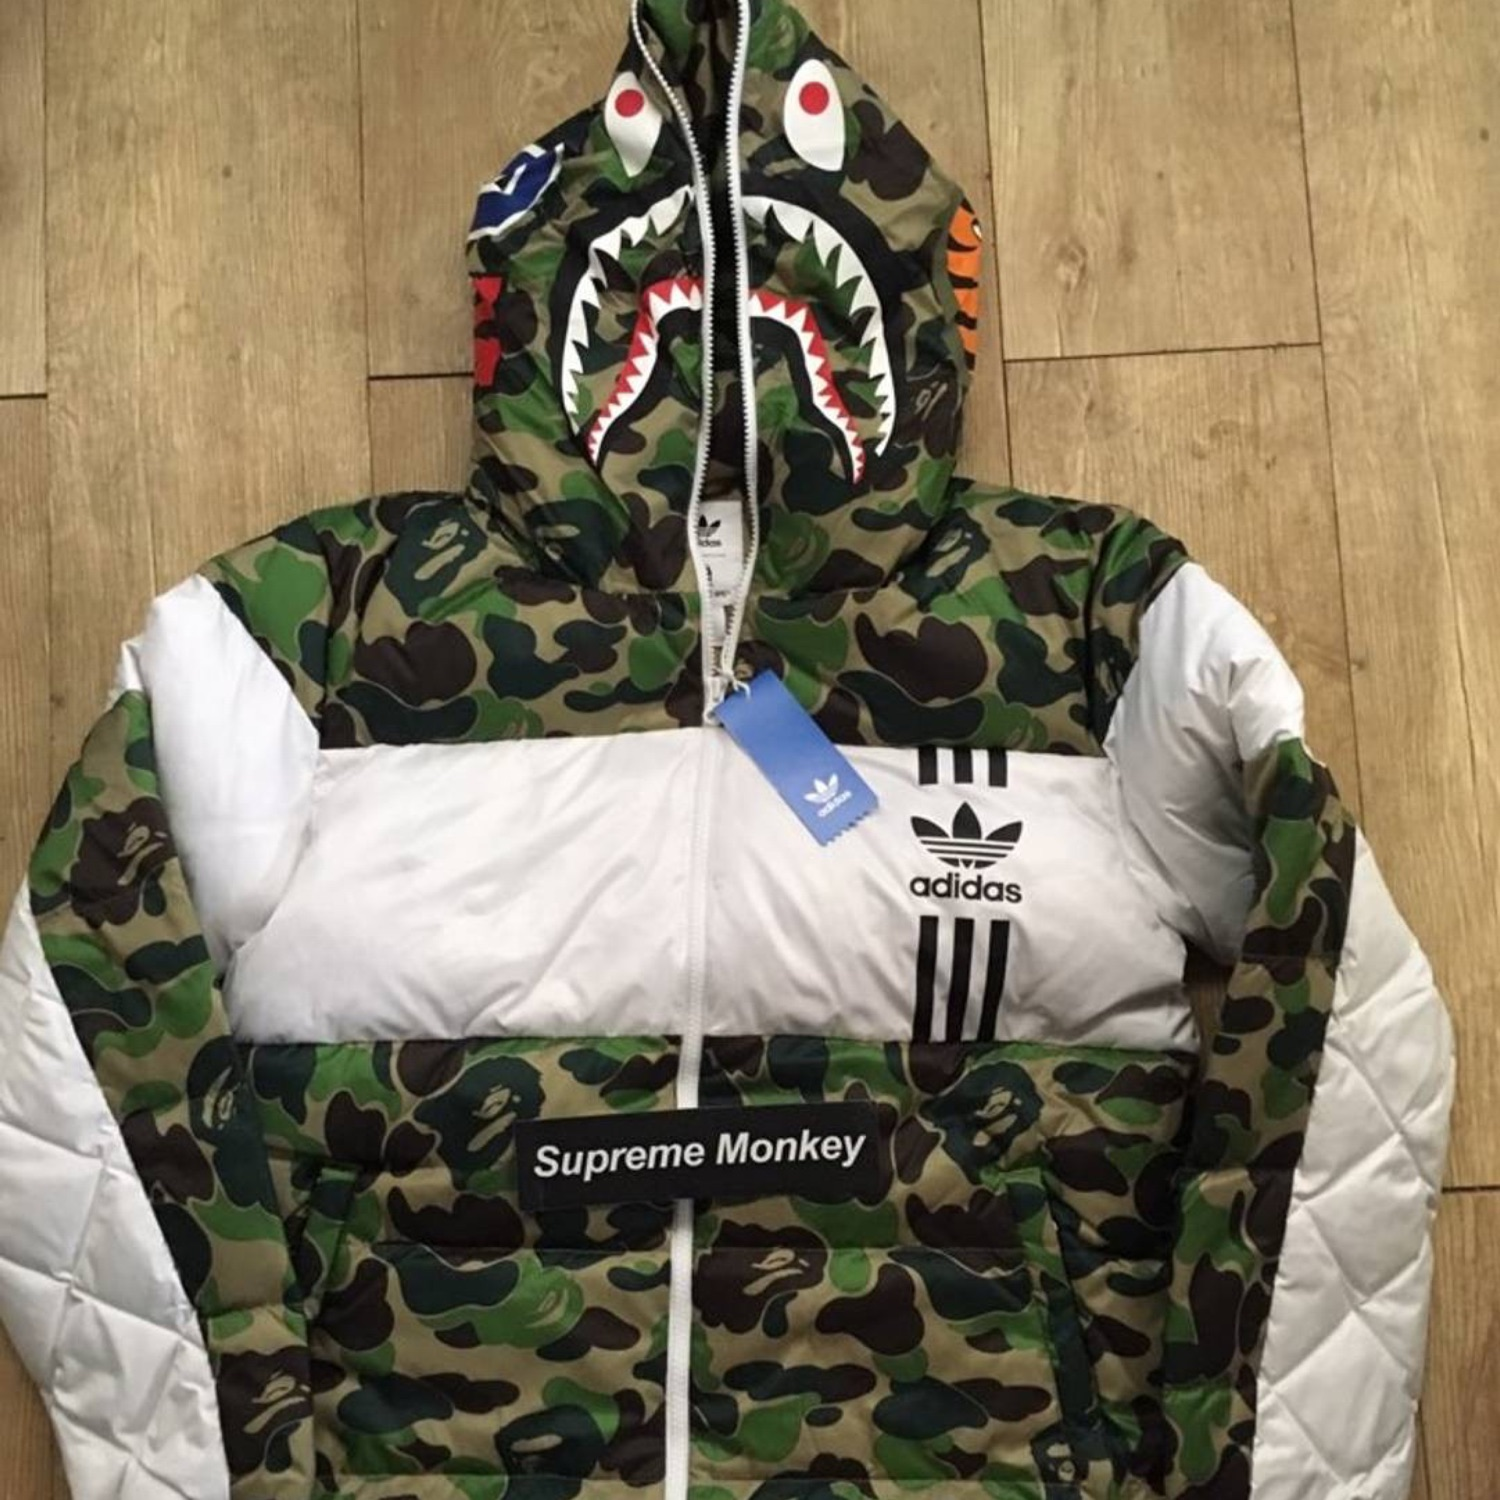 price reduced official supplier details for Bape Adidas Shark Down Jacket Size Medium Puffer